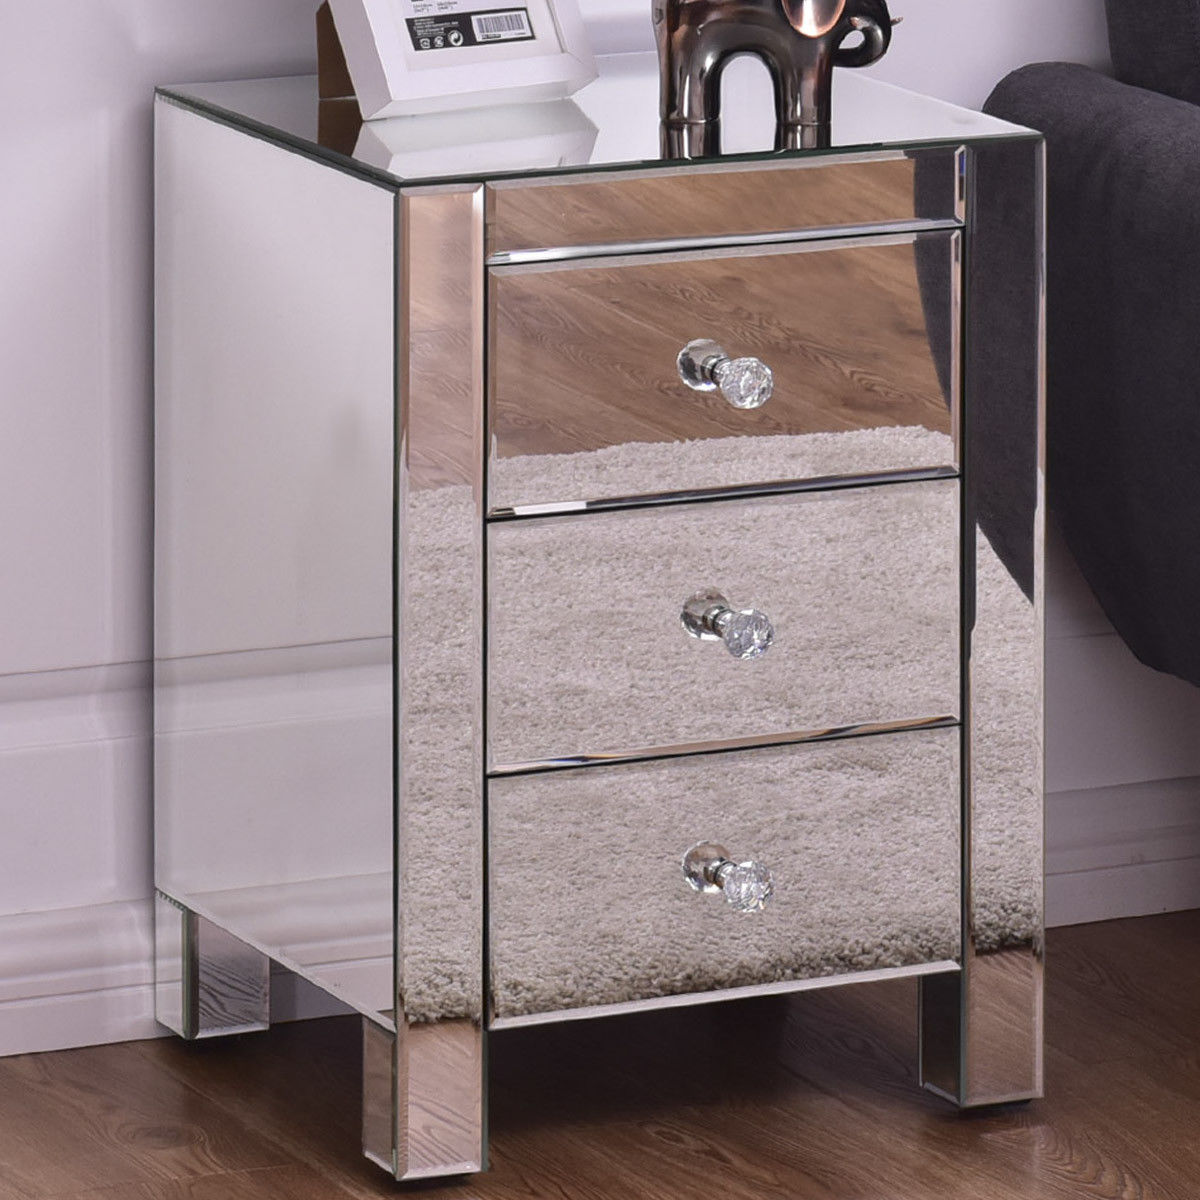 Giantex Mirrored Nightstand with 3 Drawer Modern Mirror End Table Bedroom Furniture Luxury Storage Accent Cabinet HW56409 zen s bamboo nightstand miti function storage drawer cabinet bed side table living bedroom funiture